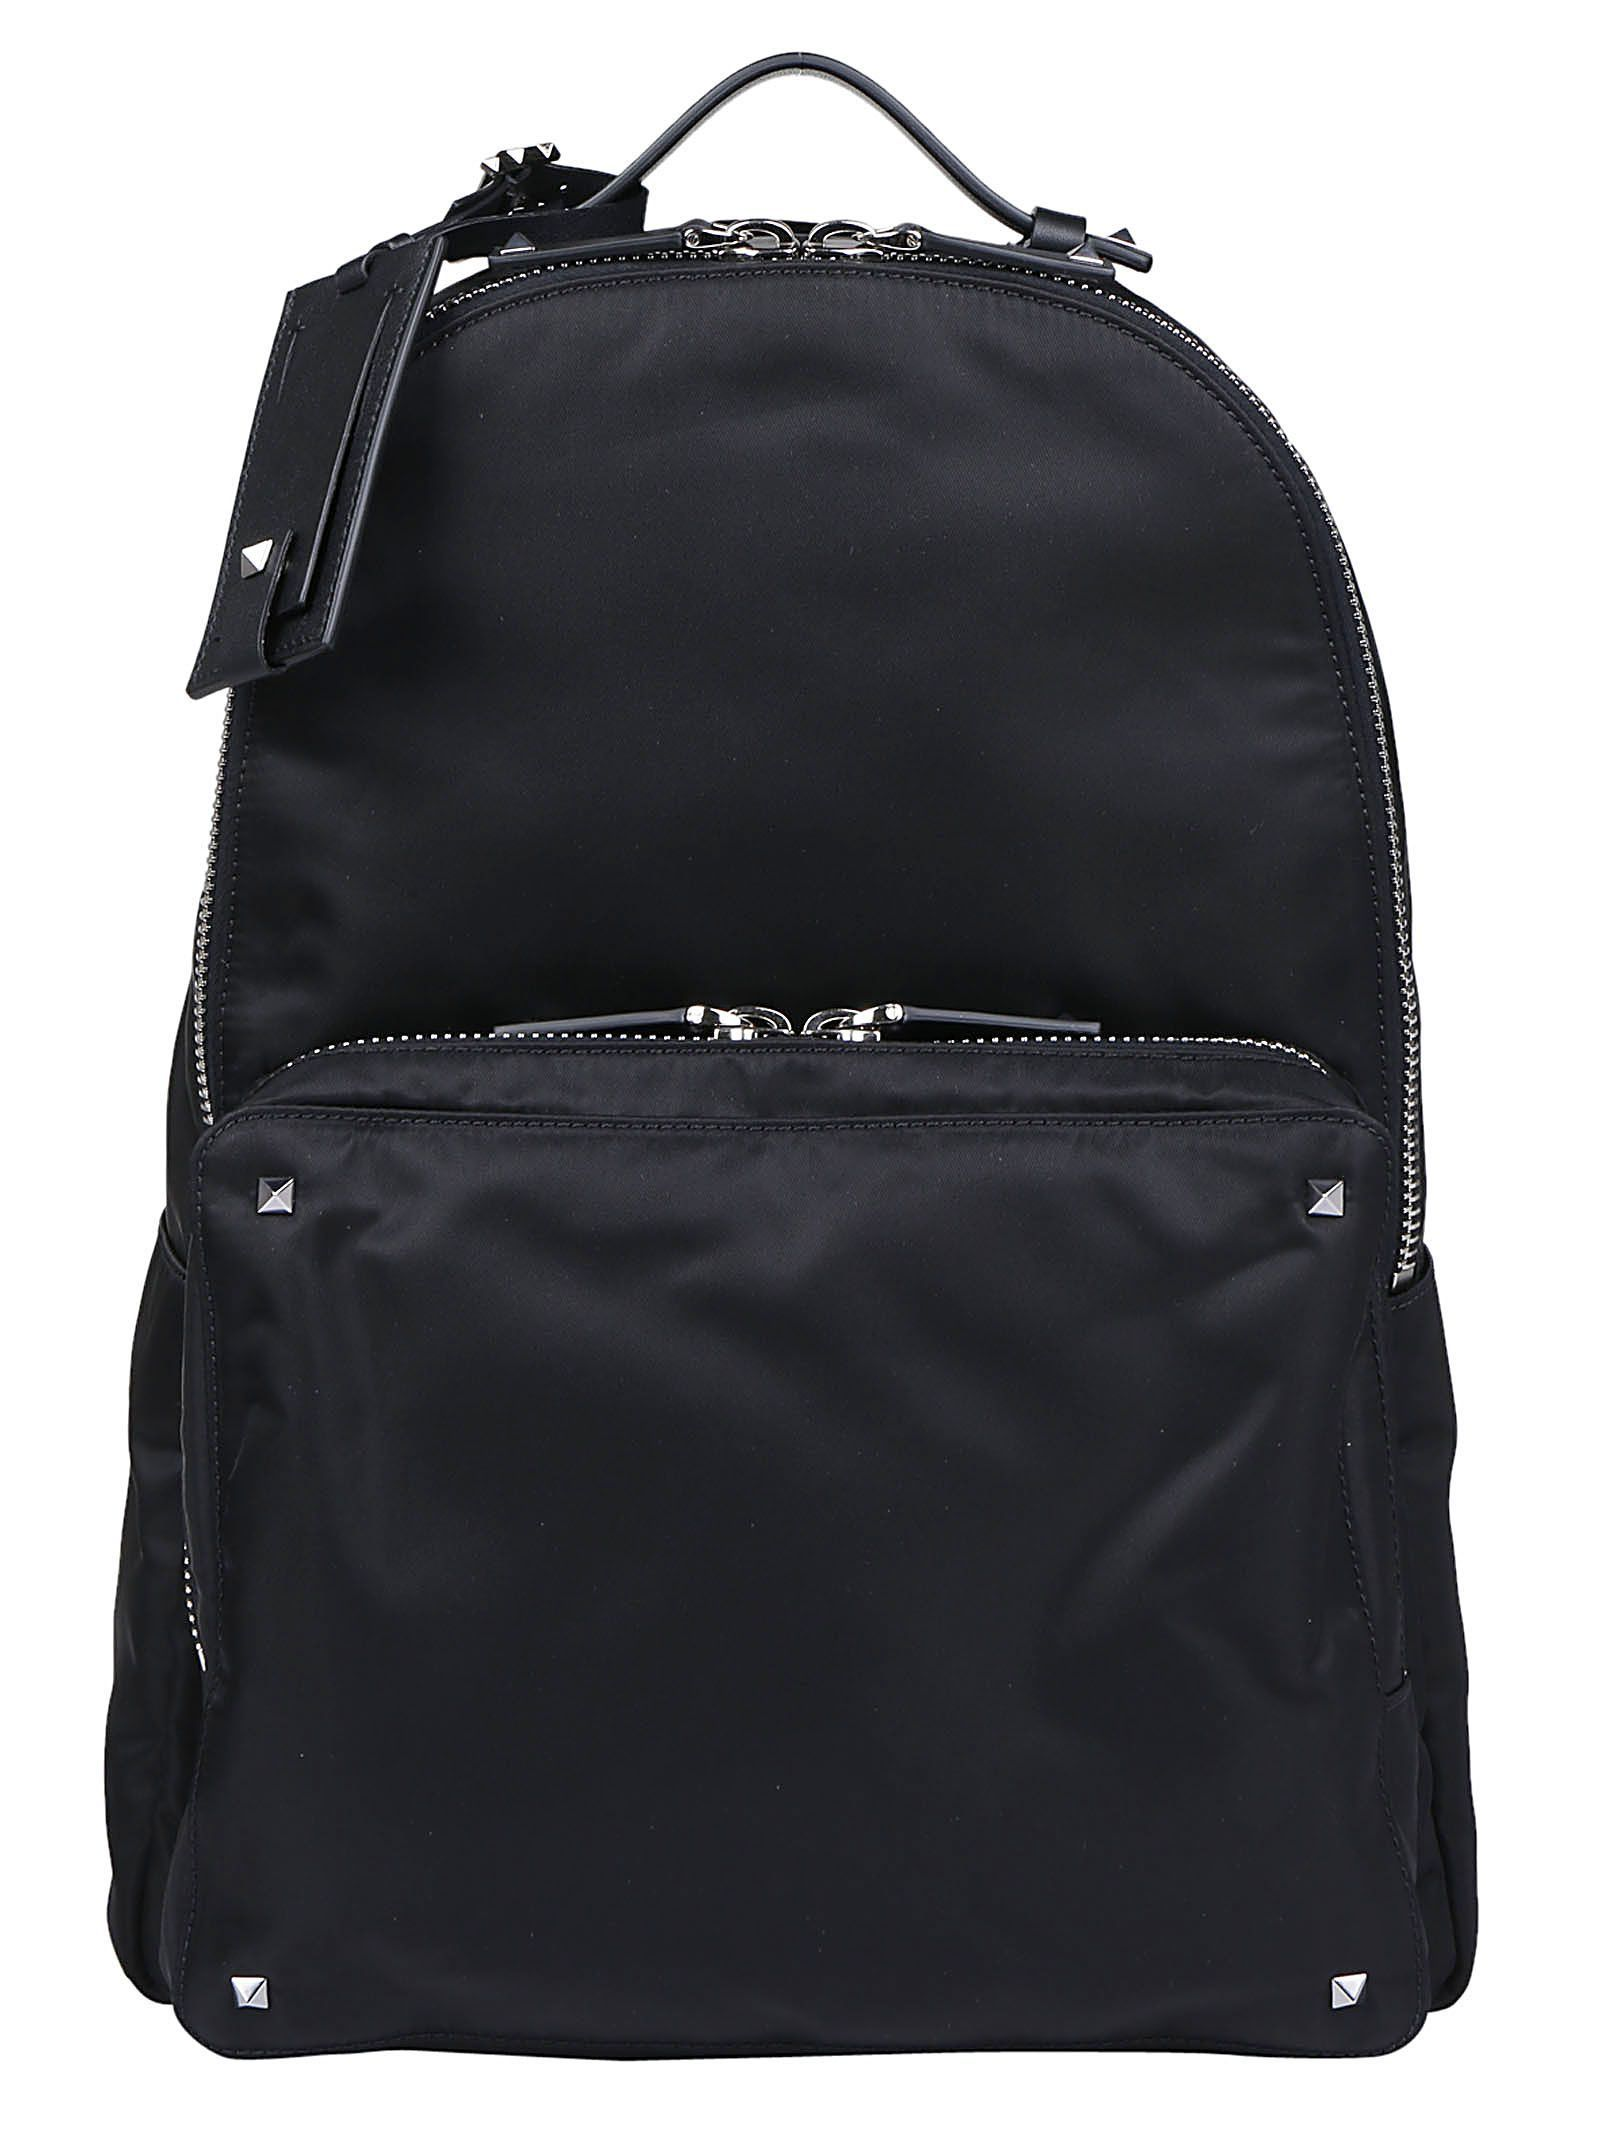 fc644f5765bf VALENTINO BACKPACK.  valentino  bags  leather  nylon  backpacks ...